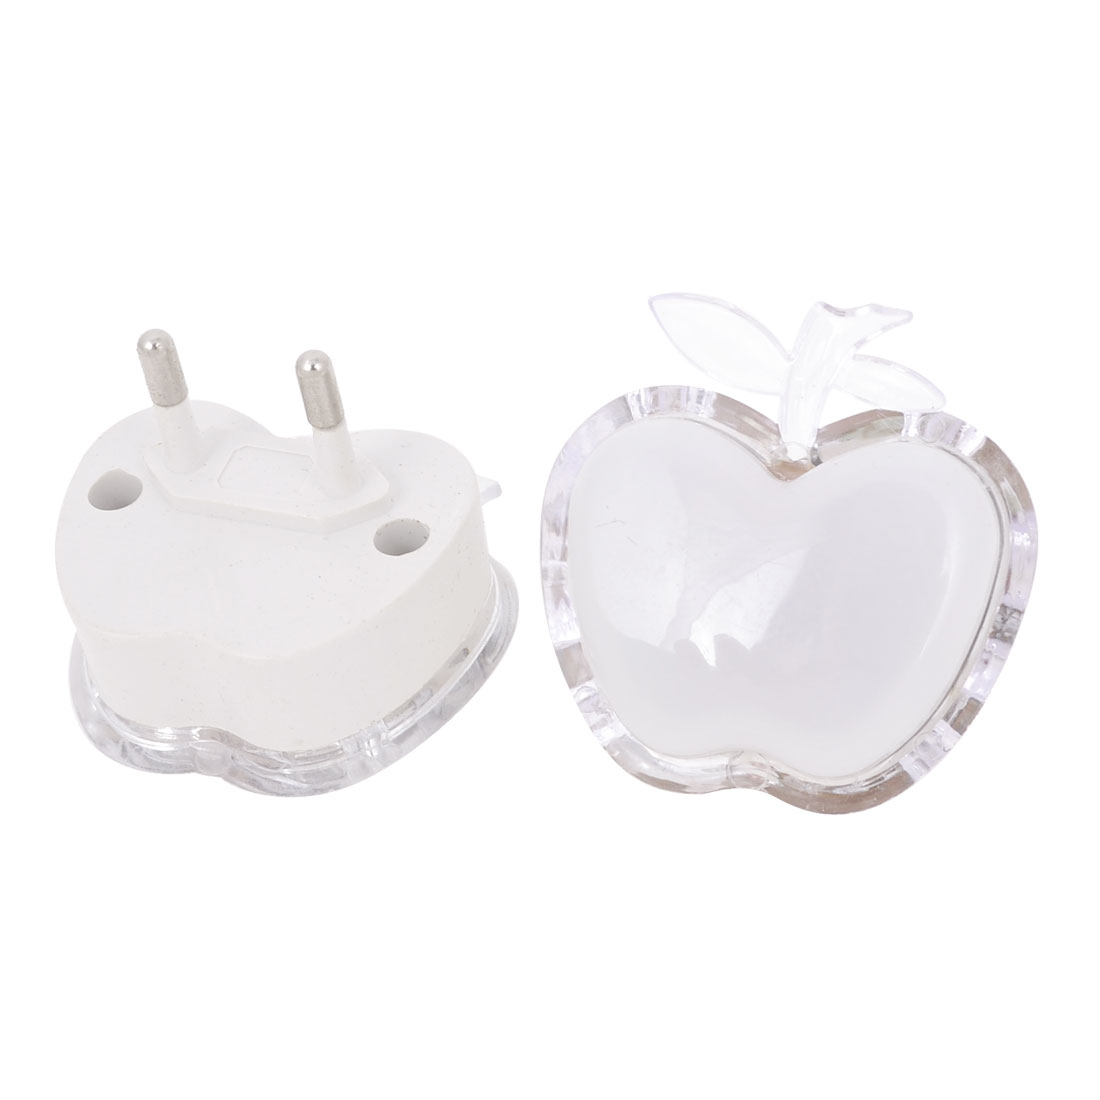 2 Pcs Apple Shape Red Blue Green LED Light Night Lamp AC 120-250V EU Plug